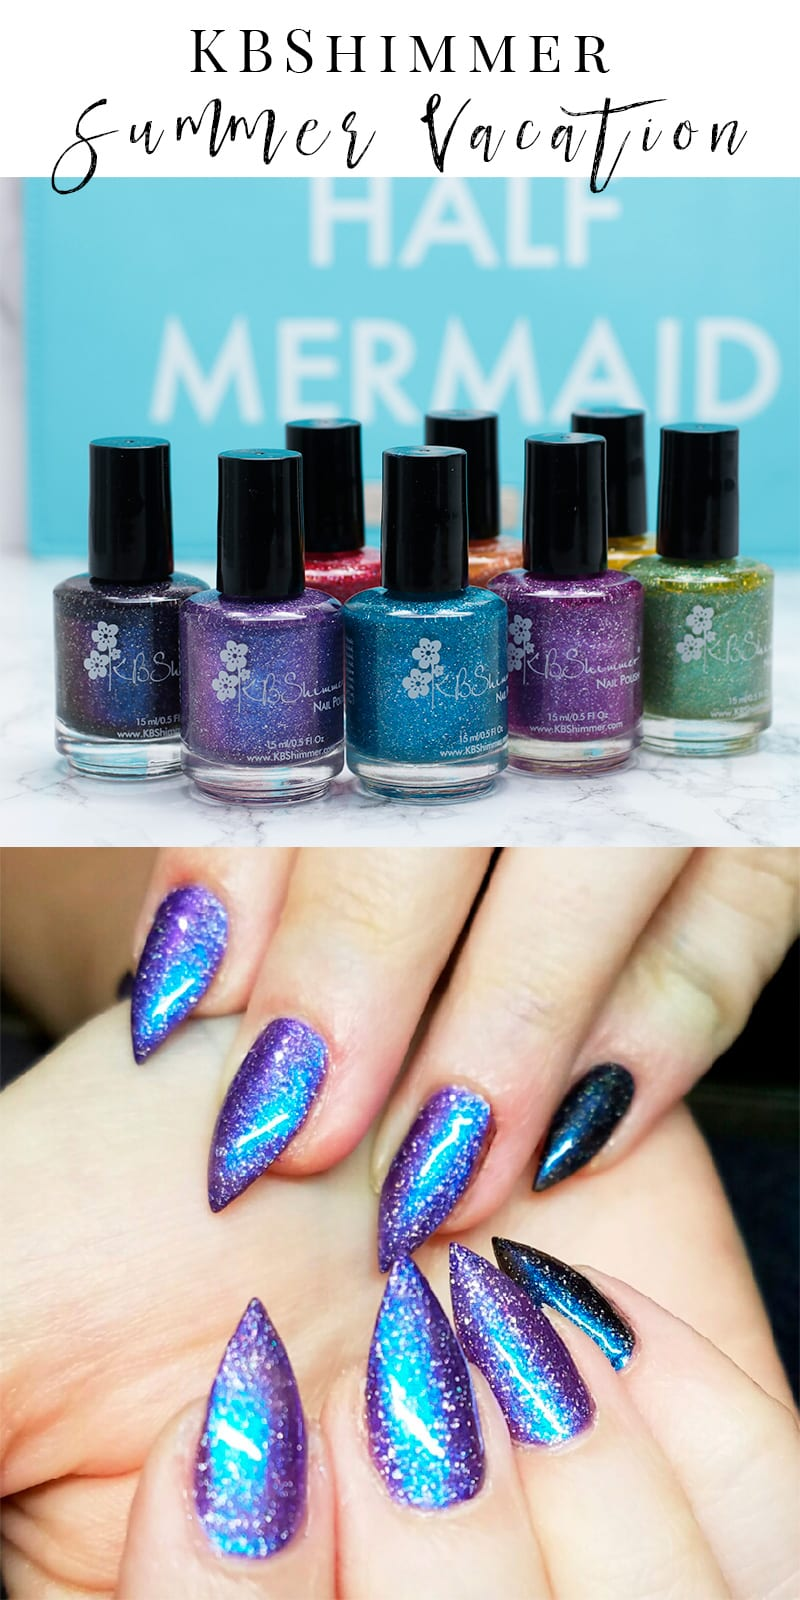 KBShimmer Summer Vacation Nail Polishes Review and Swatches - Fall in love with unique, handmade indie nail polish.